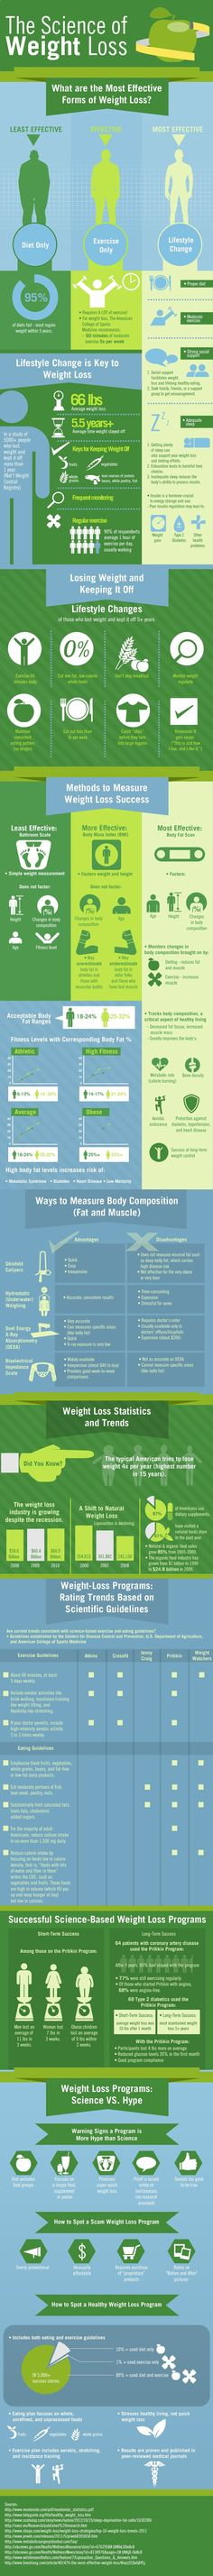 """Weight Loss E-Factor Diet - Losing weight doesn't have to be an overly complicated endeavor, but it does require a basic understanding of how diet, exercise, and lifestyle are related. In this infographic, learn about the actual science that is behind effective weight loss. #weightl (2 Week Diet Losing Weight) For starters, the E Factor Diet is an online weight-loss program. The ingredients include """"simple real foods"""" found at local grocery stores."""